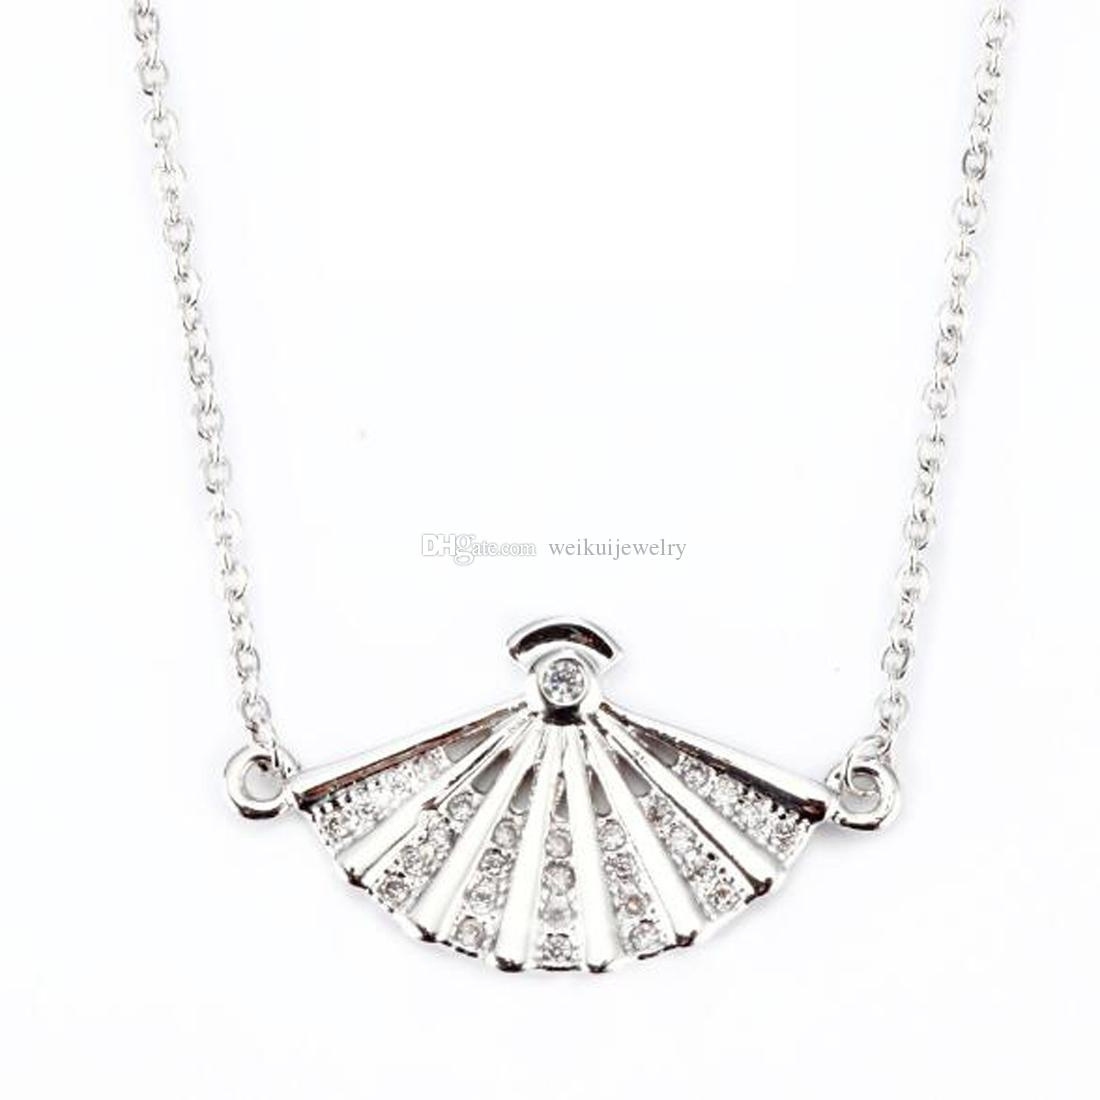 Stainless Steel Creative Fan Pendant Necklace Fashion Wild Crystal Necklace  For Girl /friend / Women Best Gift Pertaining To 2019 Heart Fan Pendant Necklaces (Gallery 1 of 25)